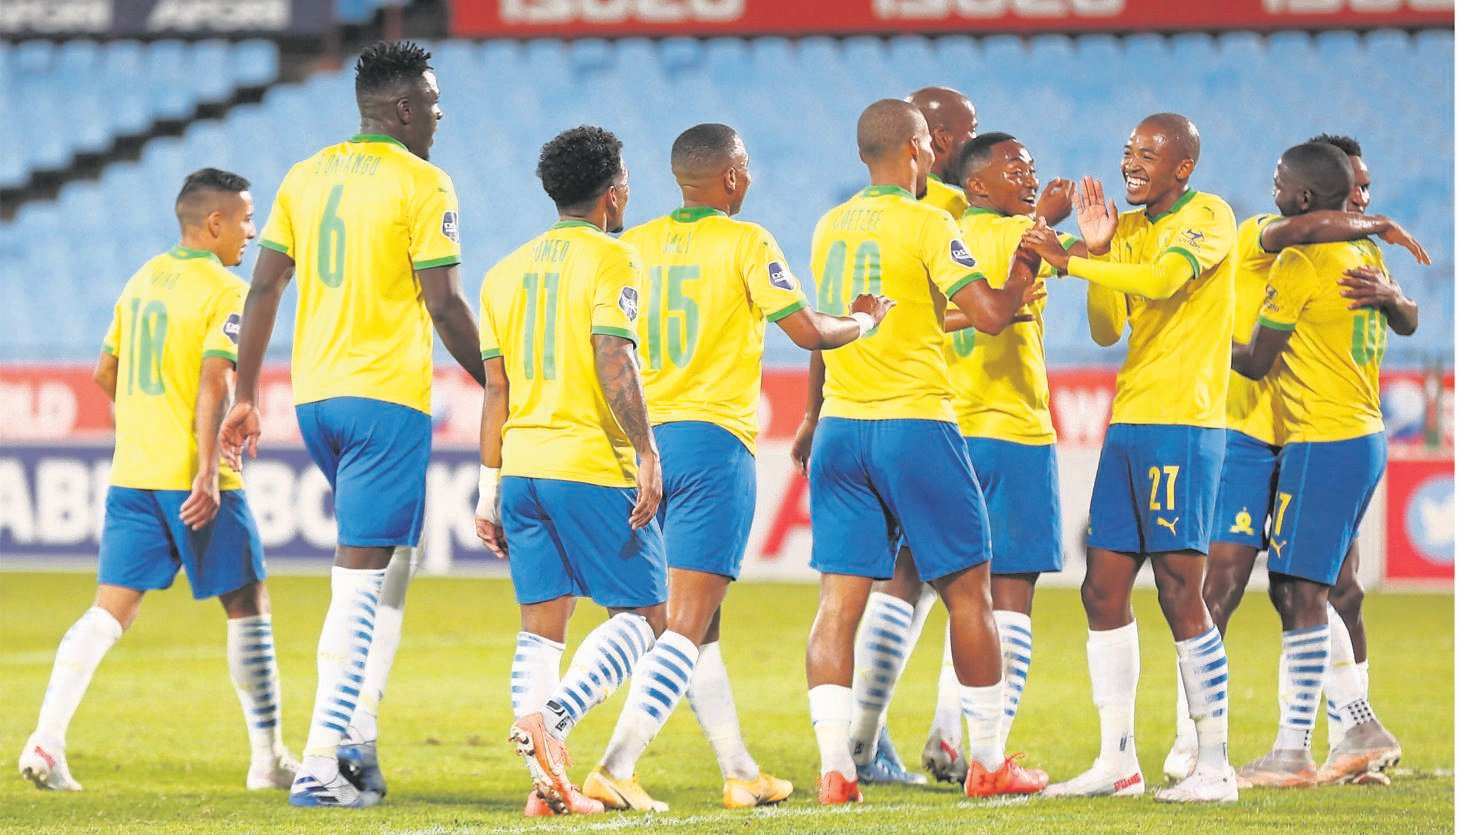 Mamelodi Sundowns players celebrate their third goal, scored by Themba Zwane in their 3-1 win over SuperSport United in the DStv Premiership at Loftus Versfeld in Pretoria on Wednesday night, which saw them wrap up the championship.